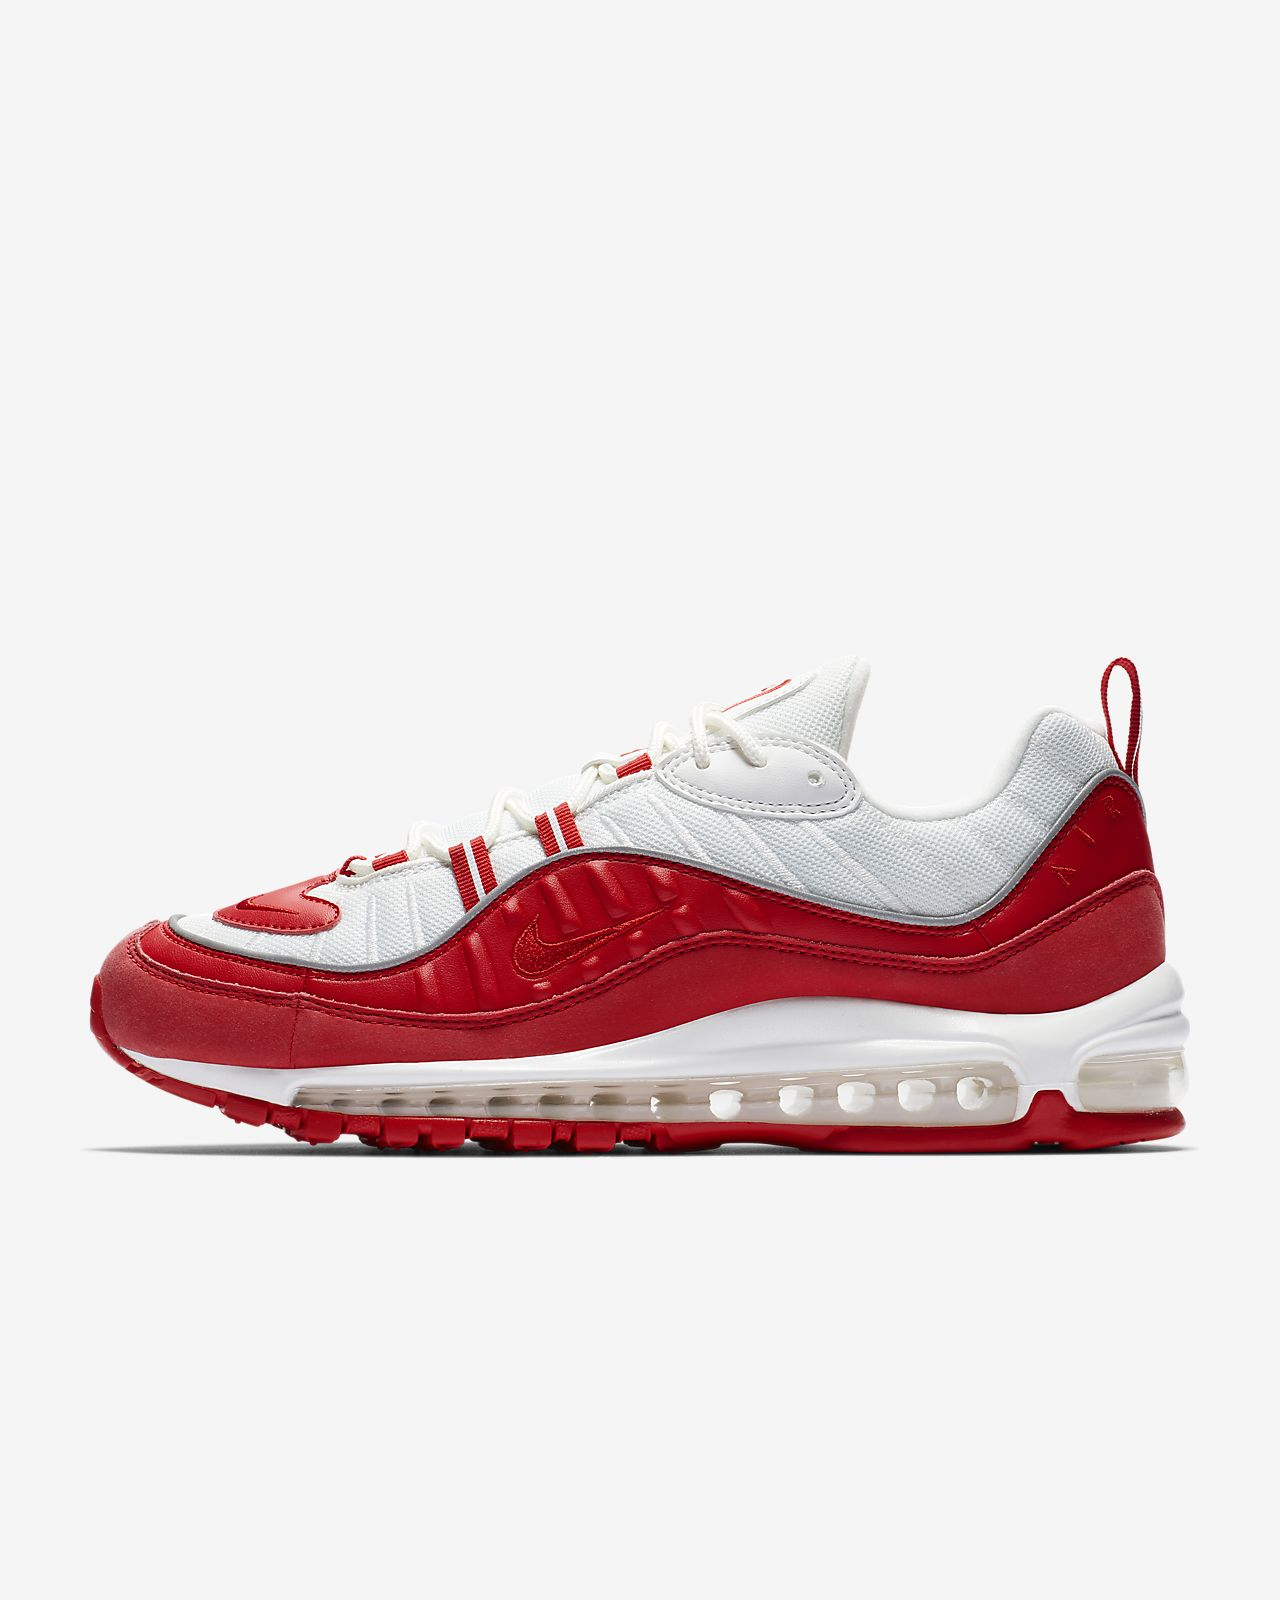 100% authentic 922a3 18488 Nike Air Max 98 Mens Shoe